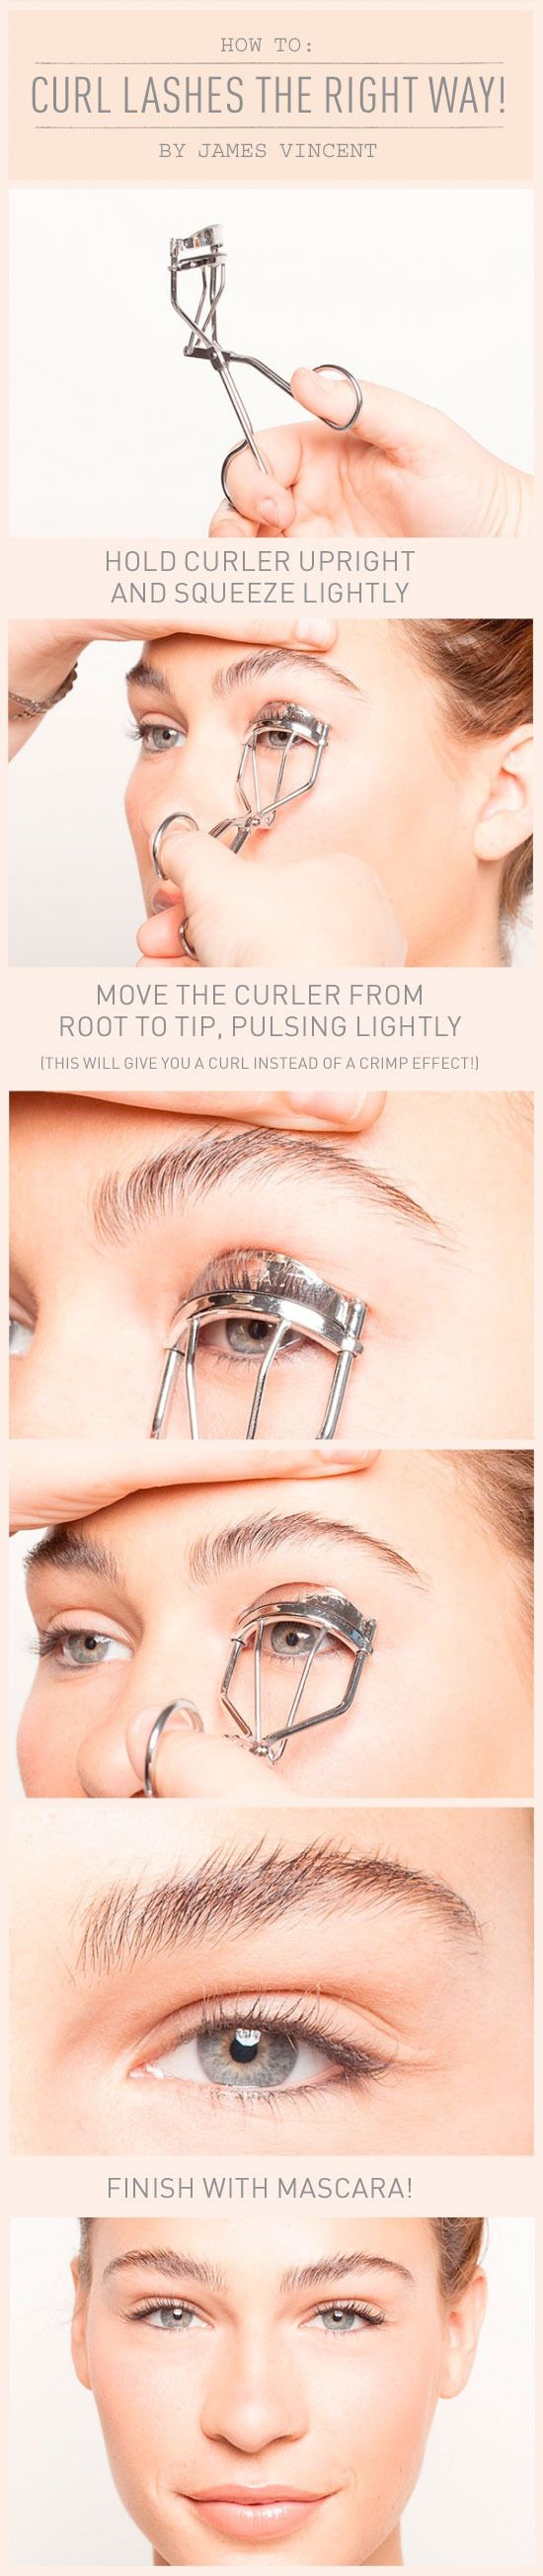 How To Curl Lashes (the Right Way) this is the silent makeup artist trick to open up eyes, make them look bigger and more awake, and make lashes look longer. Go get a tweezerman, they make the best!